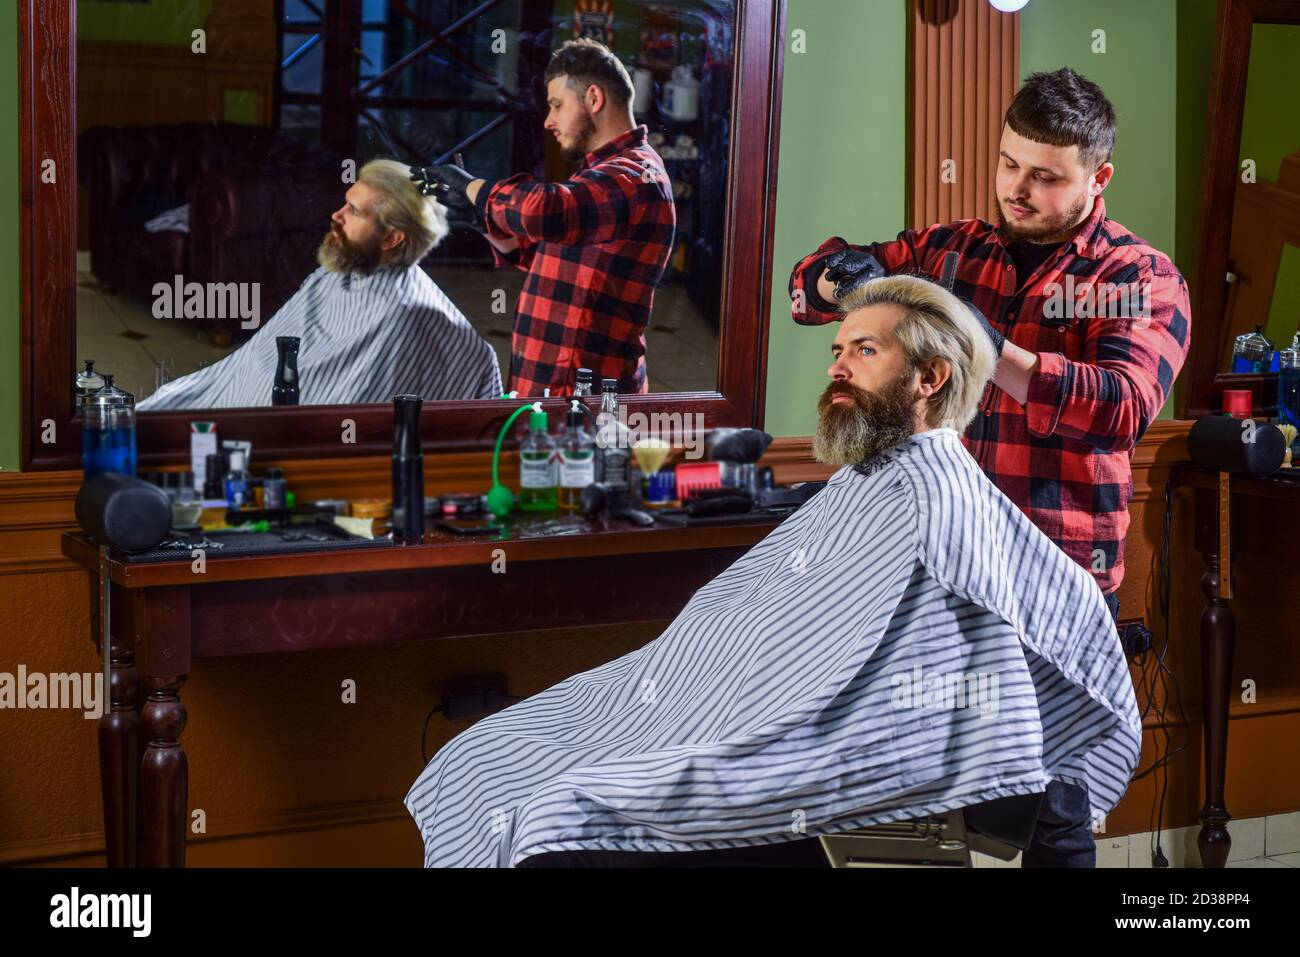 Hipster getting haircut. Man with dyed hair. Barber hairstyle ...